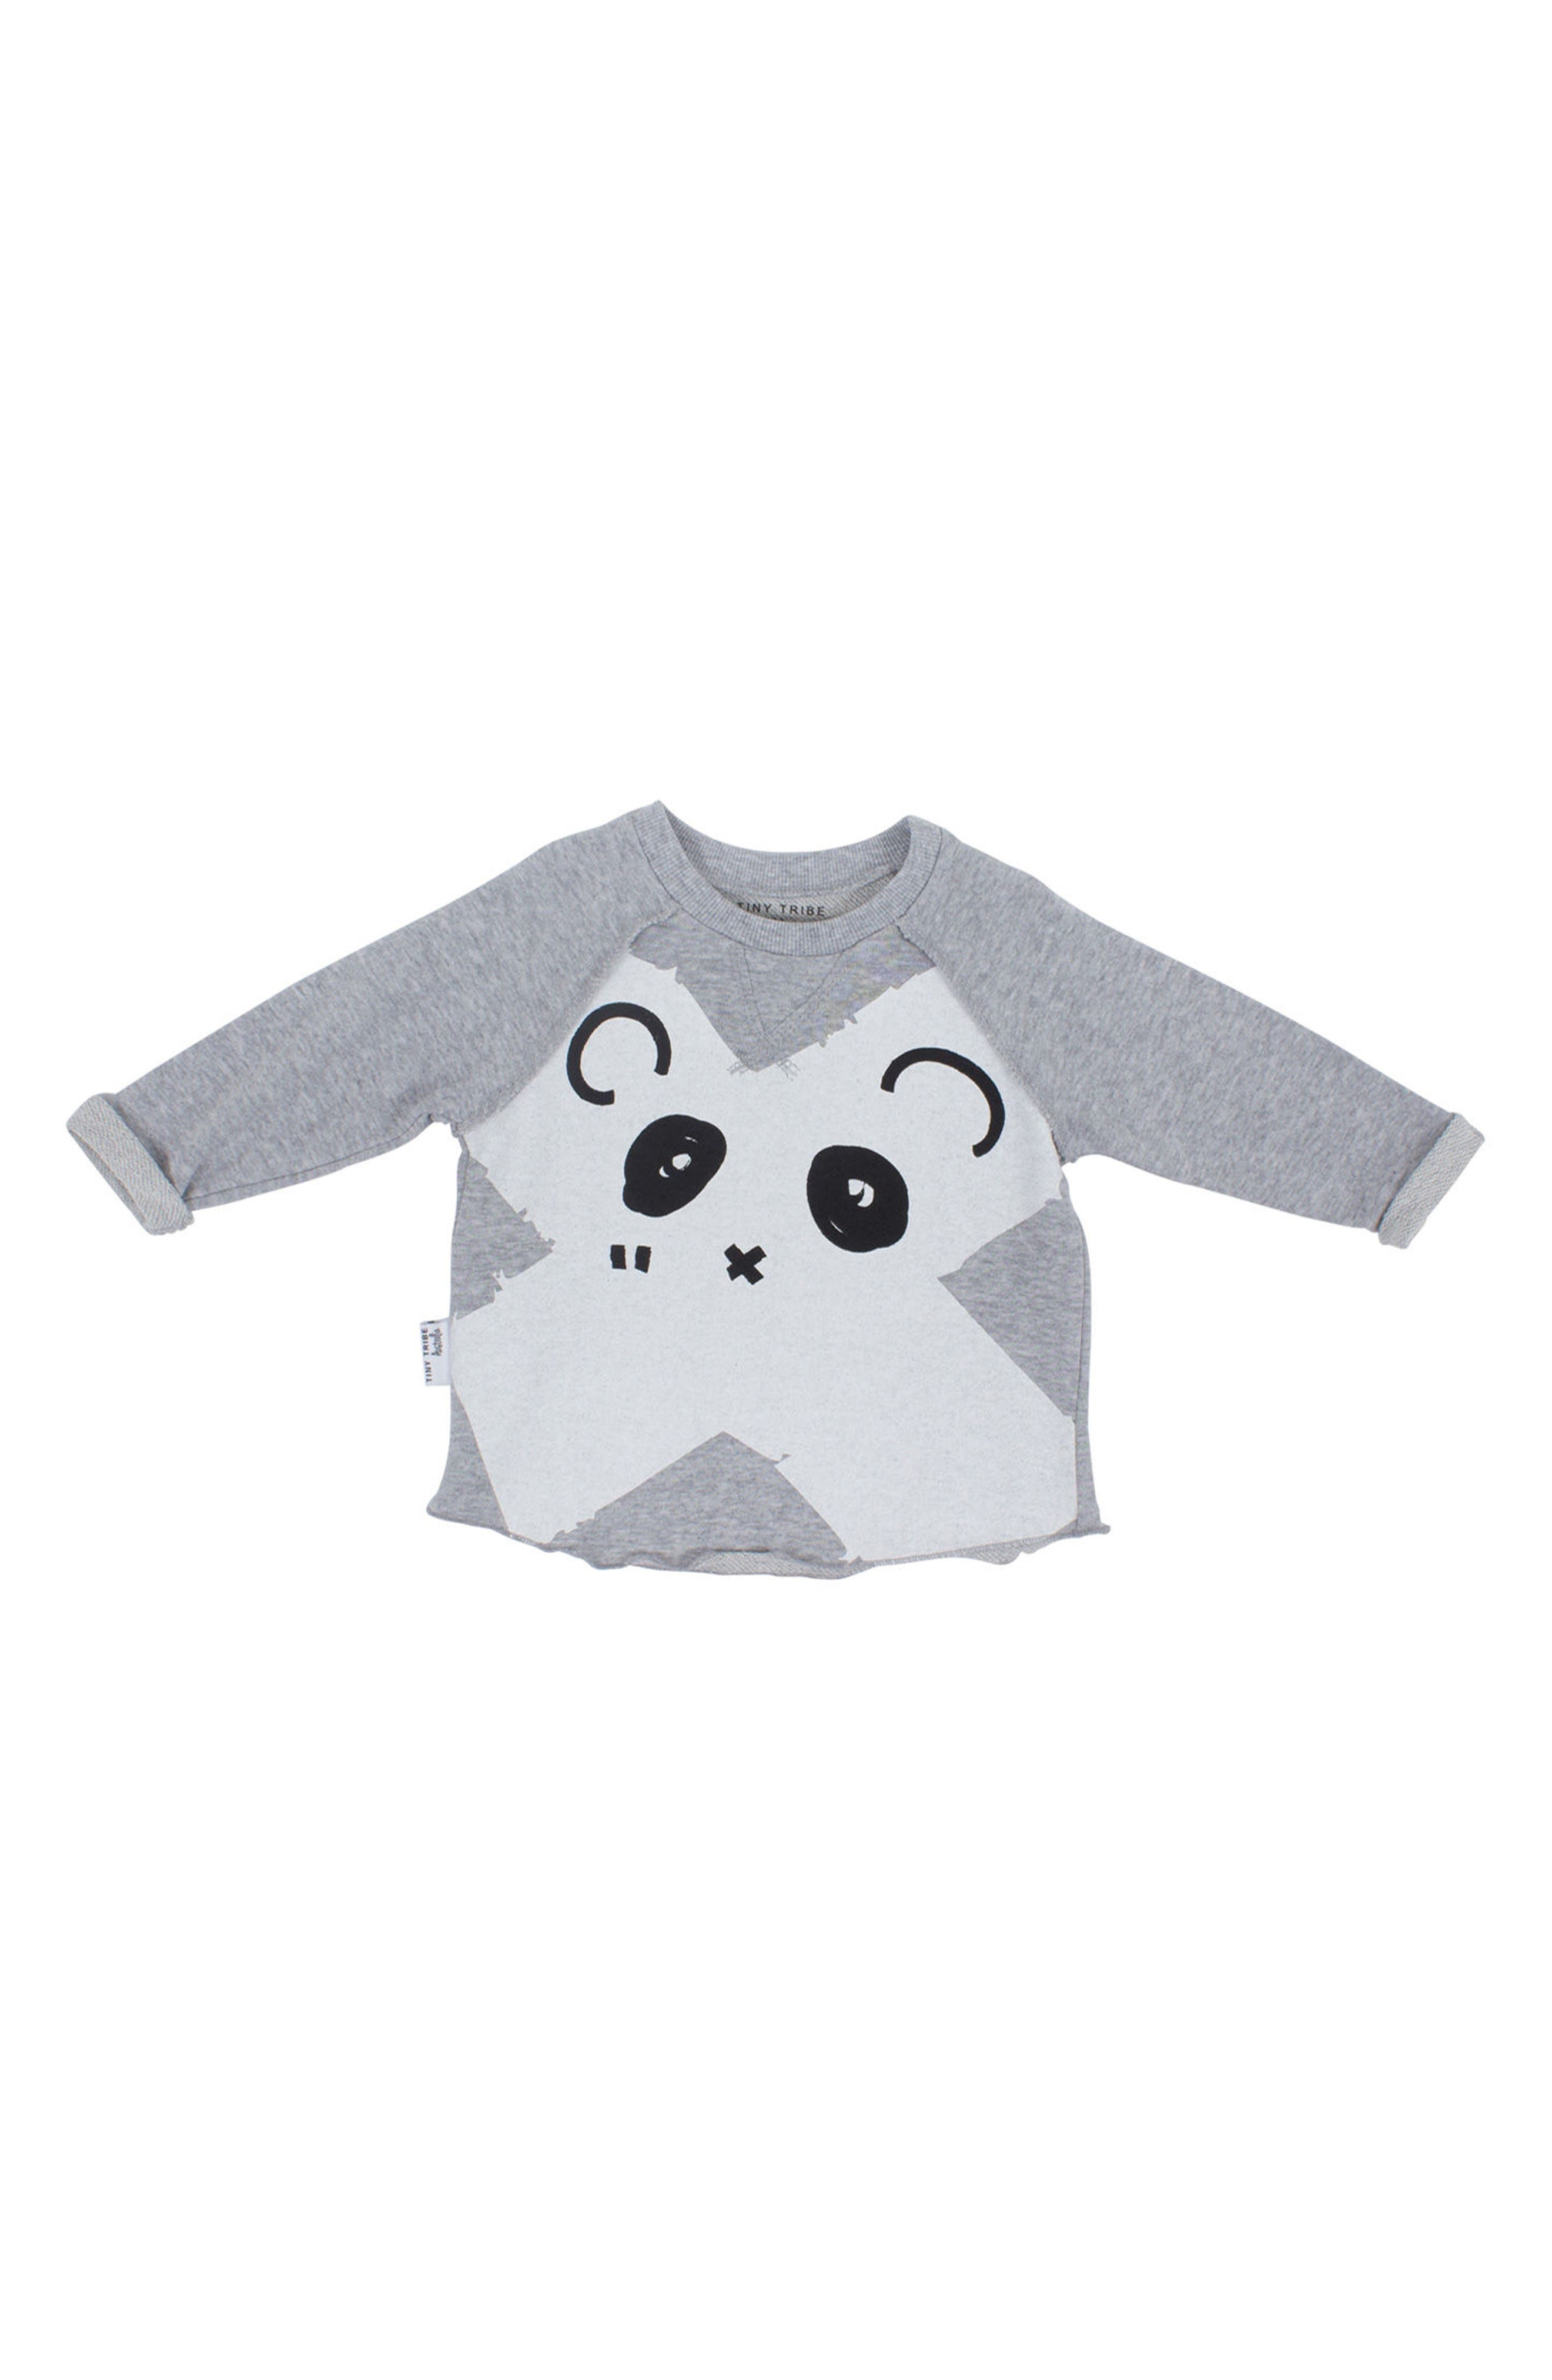 Panda Sweatshirt & Leggings Set,                             Alternate thumbnail 3, color,                             Grey And Black